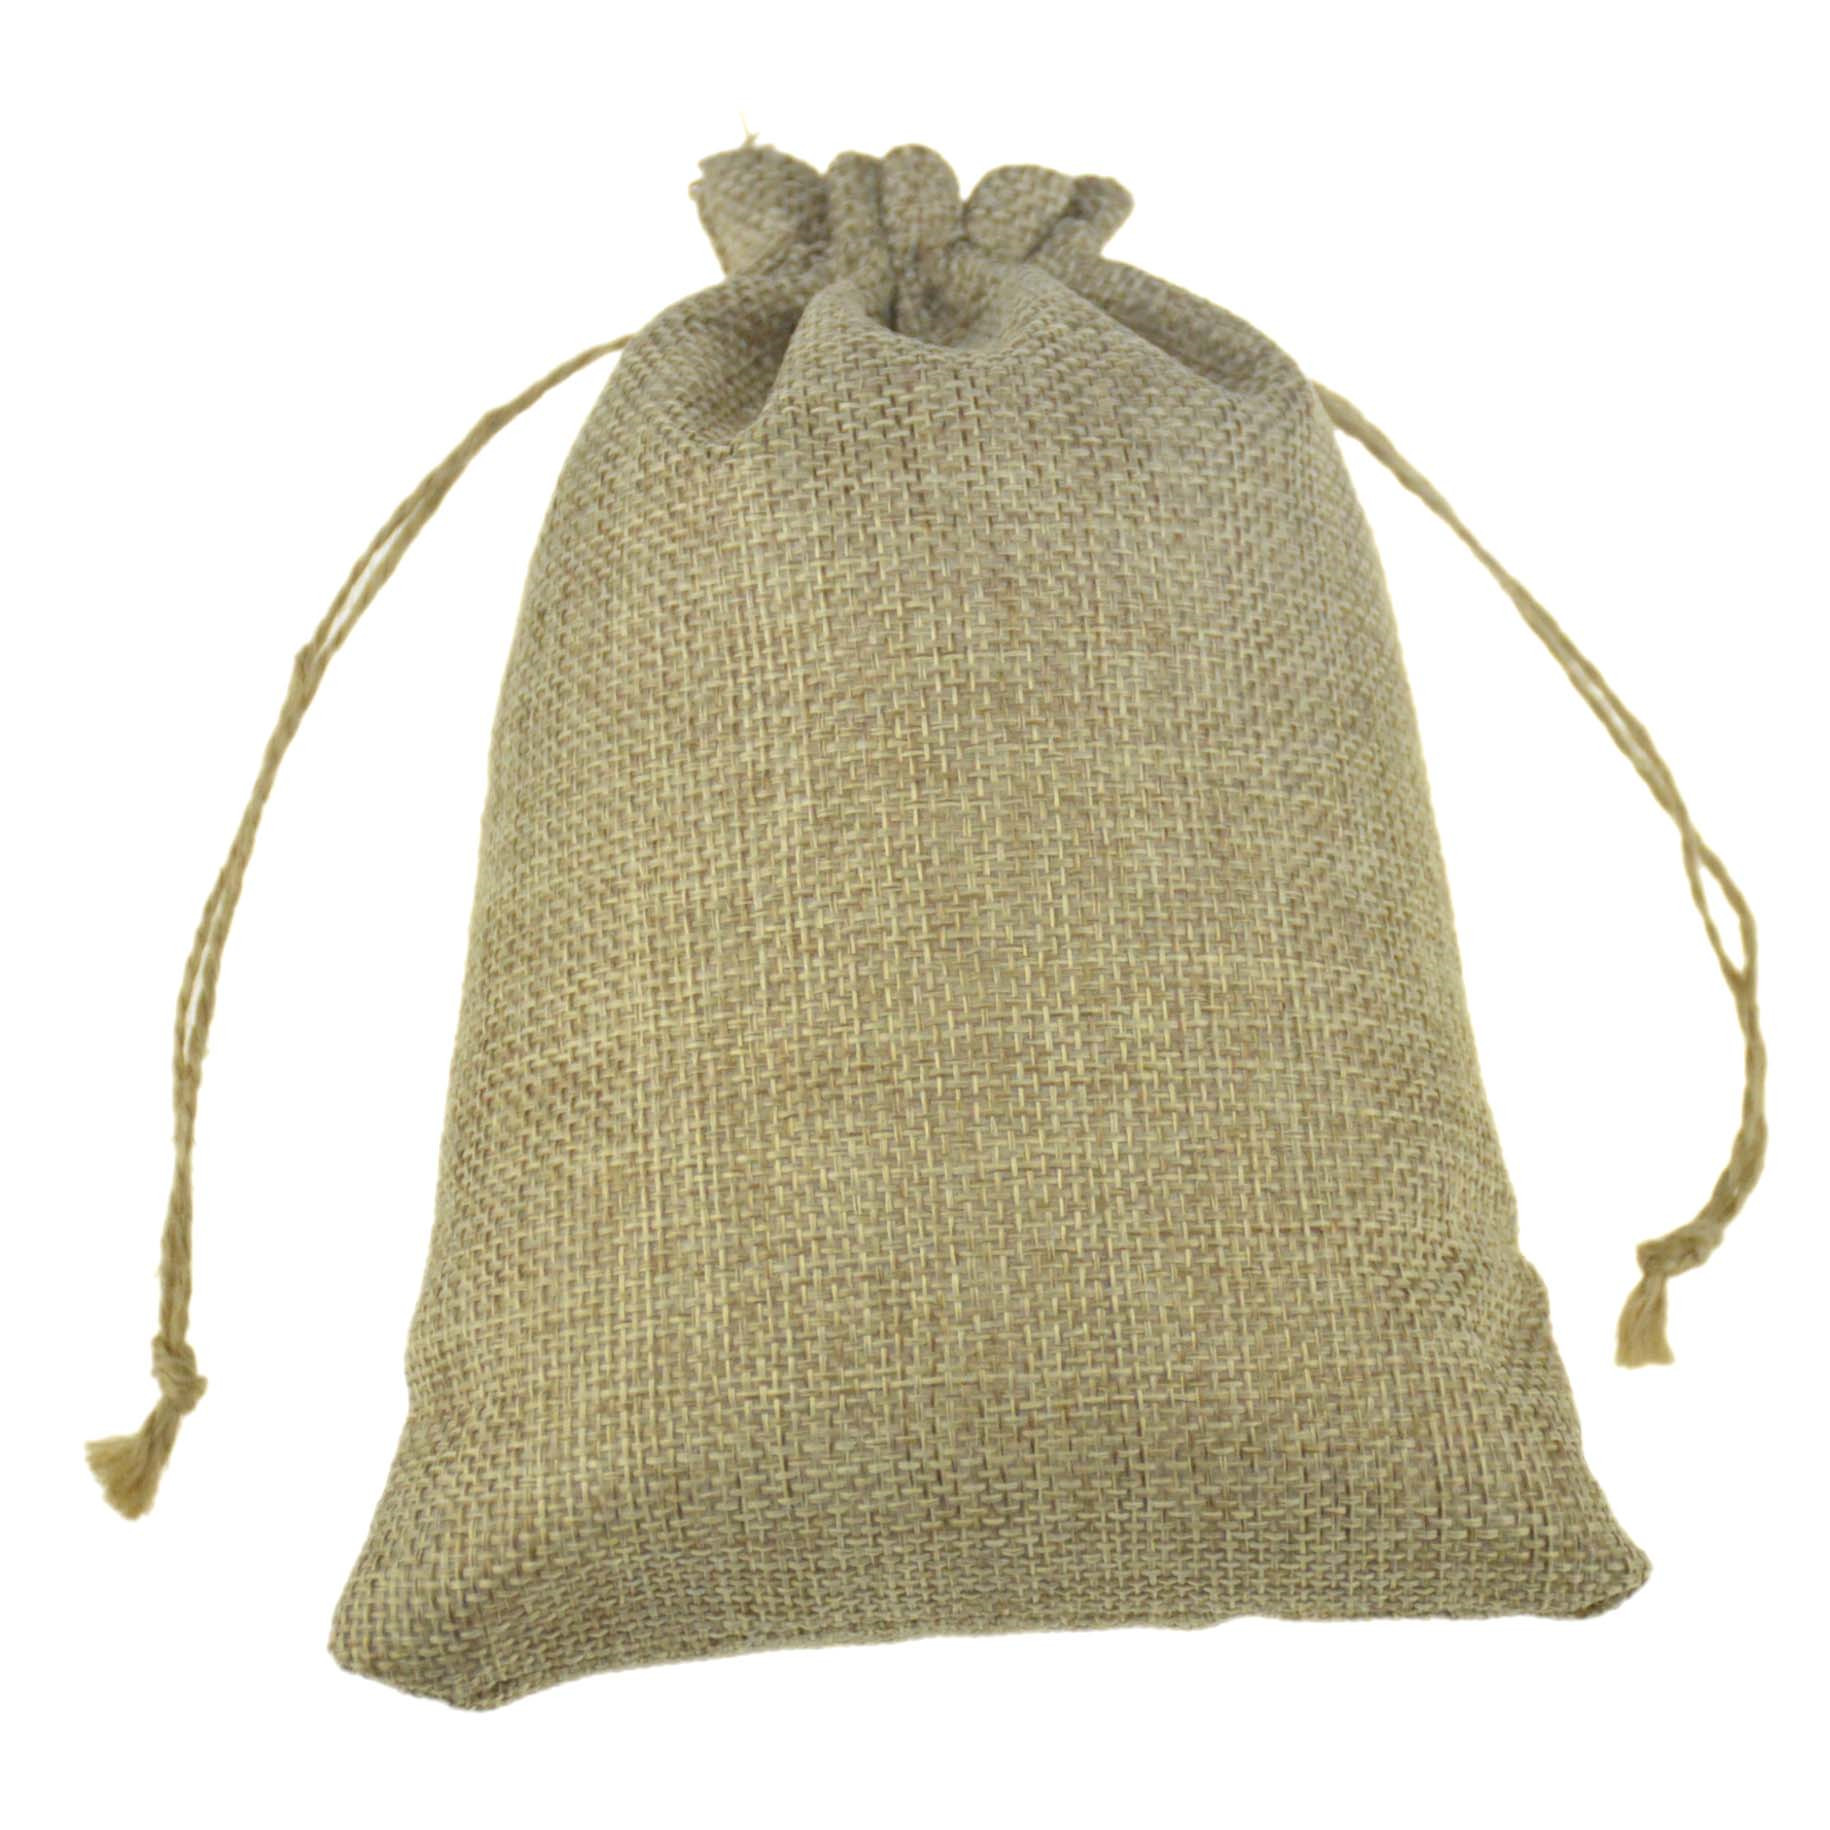 Handmade Hessian Jute Burlap Drawstring Packaging Bags For Jewelry Pouch Soap Wedding Favor Coffee Bean Sacks 1000pcs 13x18cm In Storage From Home